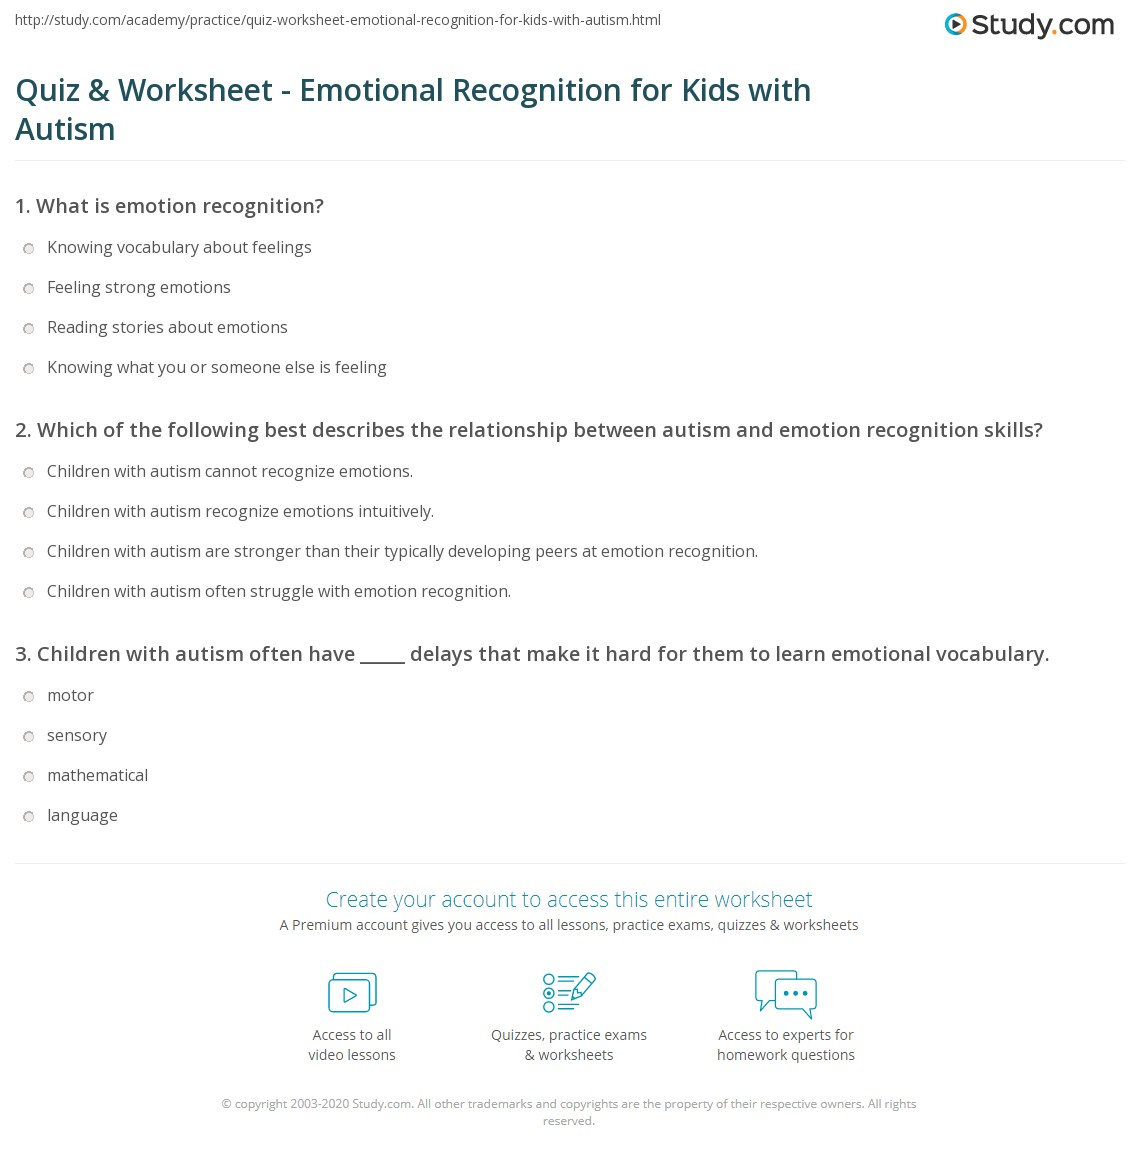 Quiz Worksheet Emotional Recognition For Kids With Autism